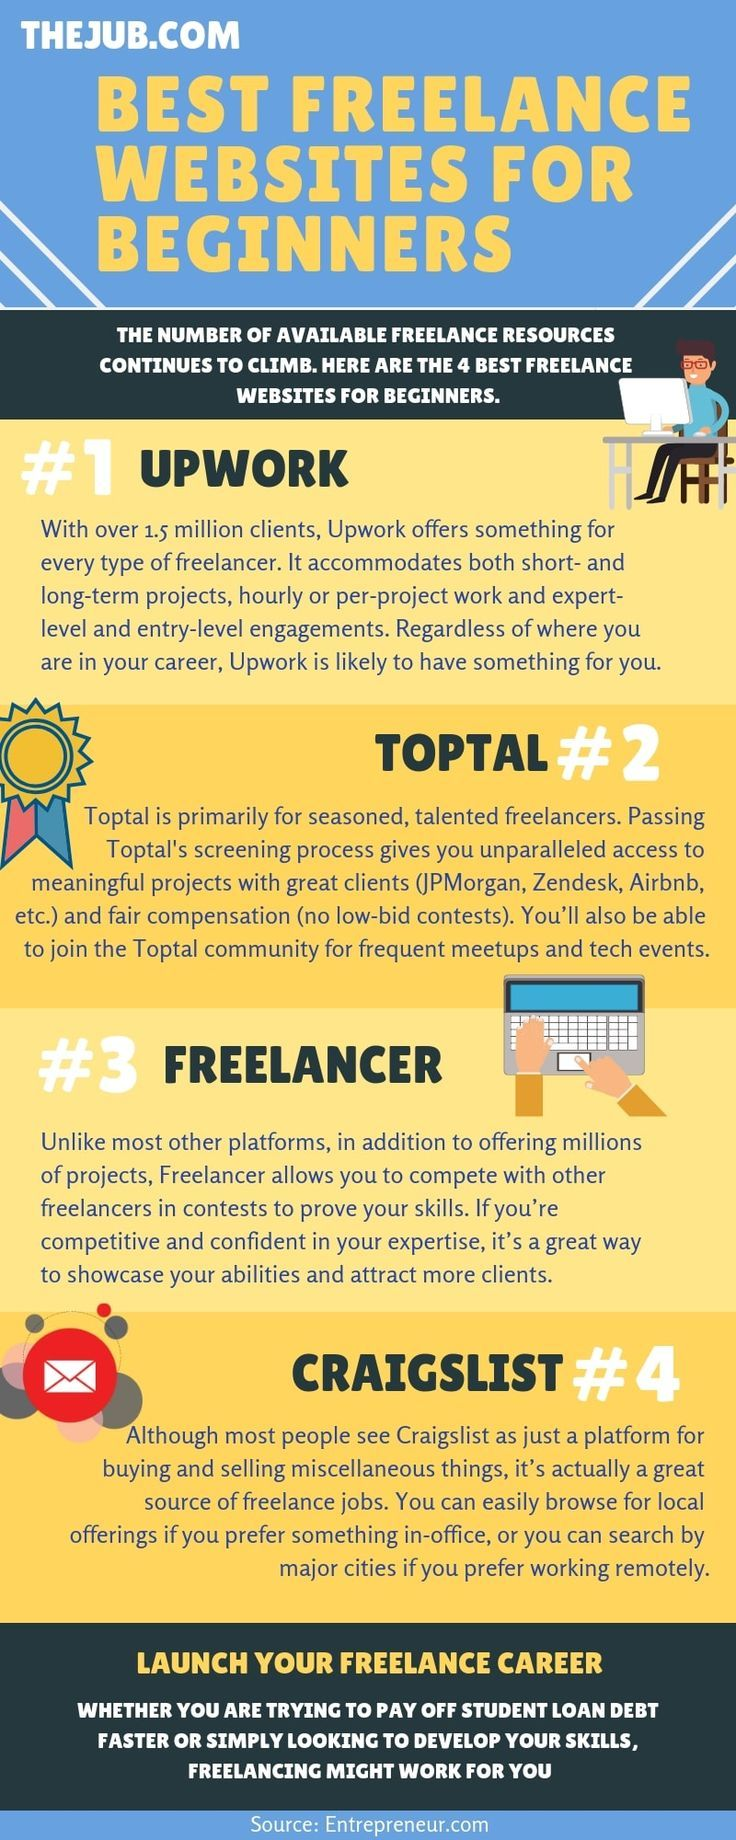 The Best Freelance Websites for Beginners (Infographic